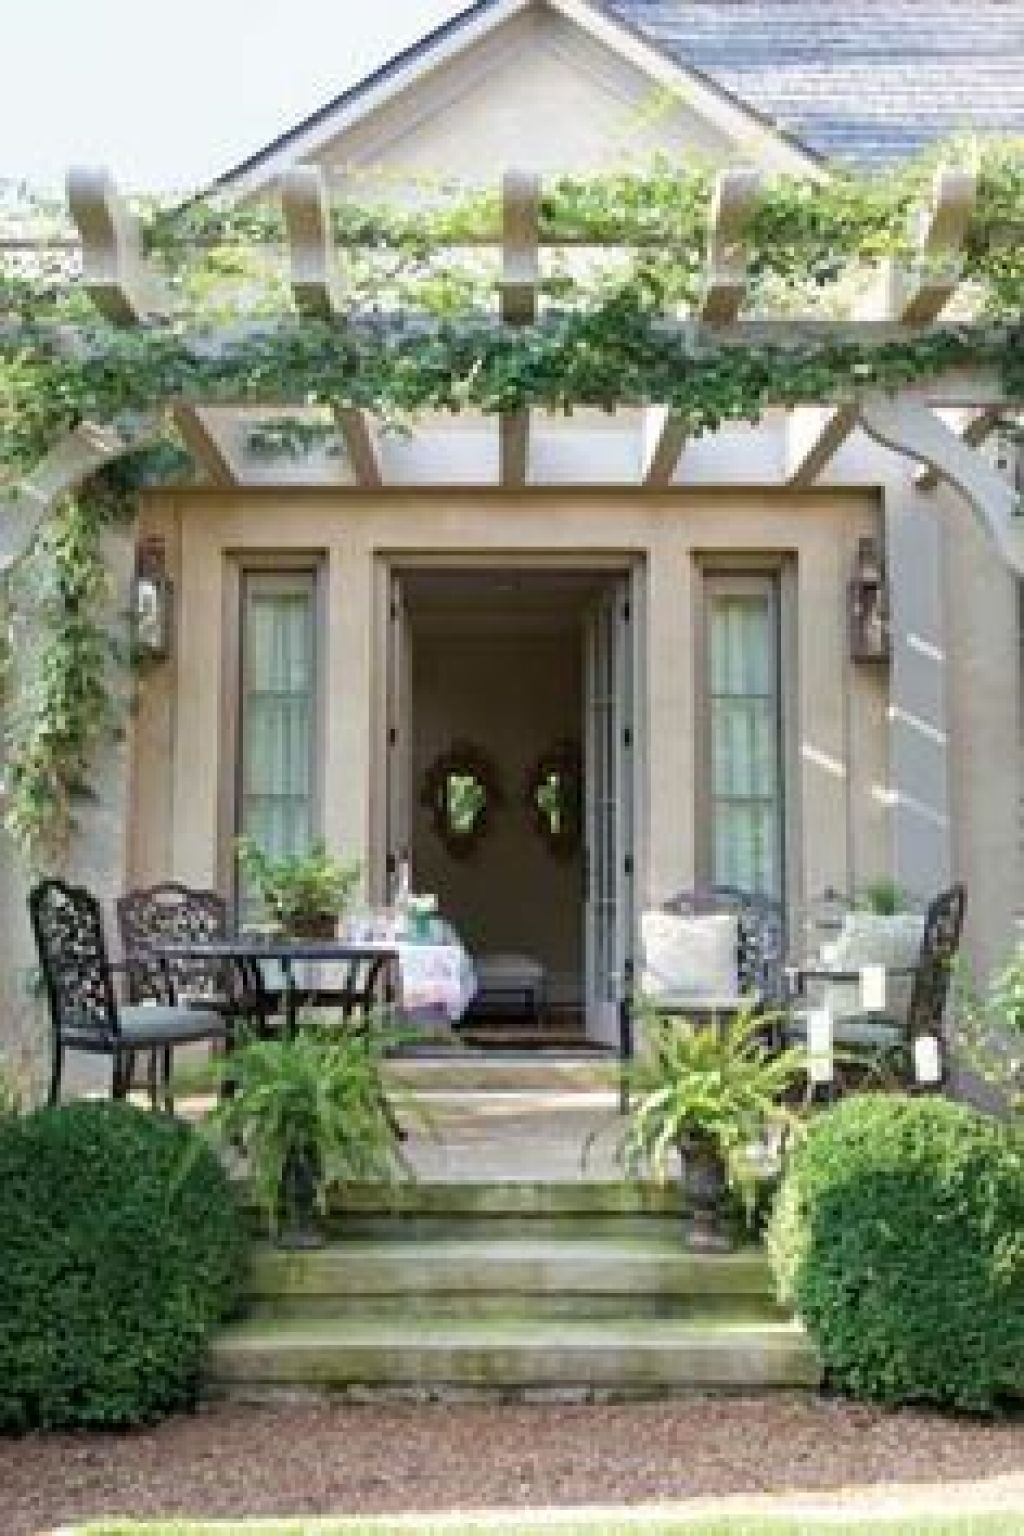 1000 ideas about front porch pergola on pinterest pergolas for Front porch patio designs